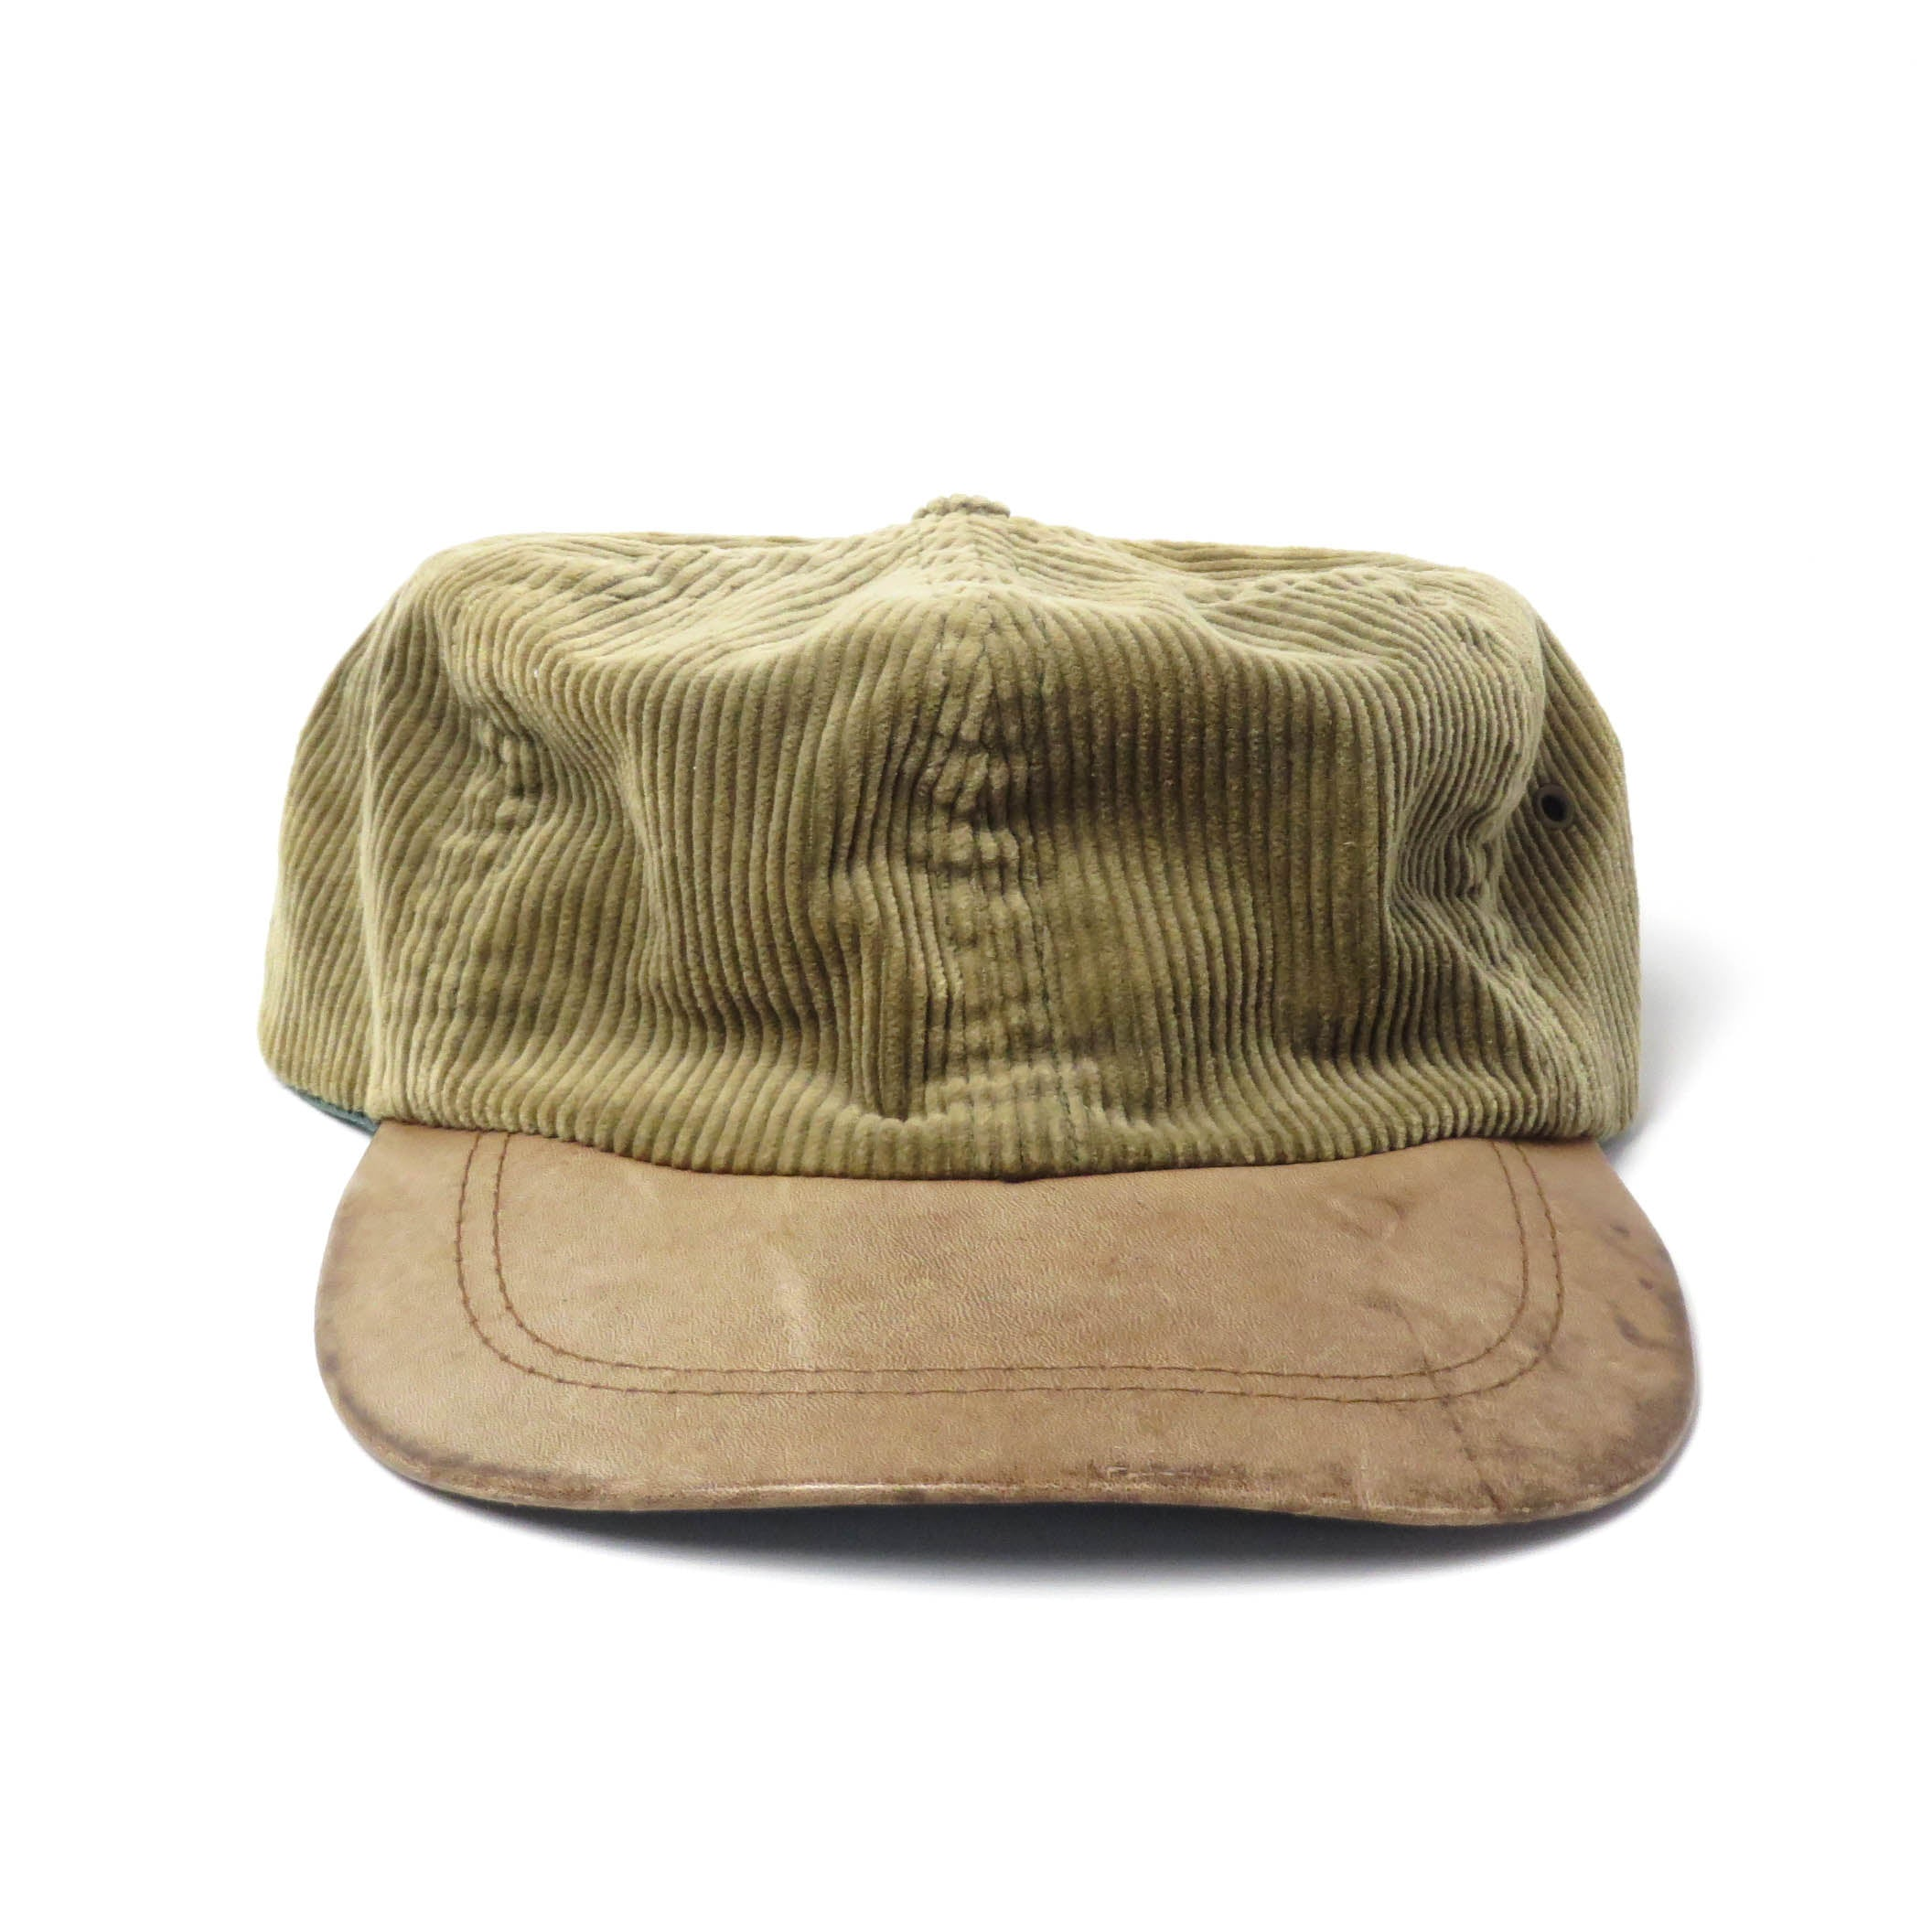 Vintage Eddie Bauer Corduroy/Leather Flex Hat